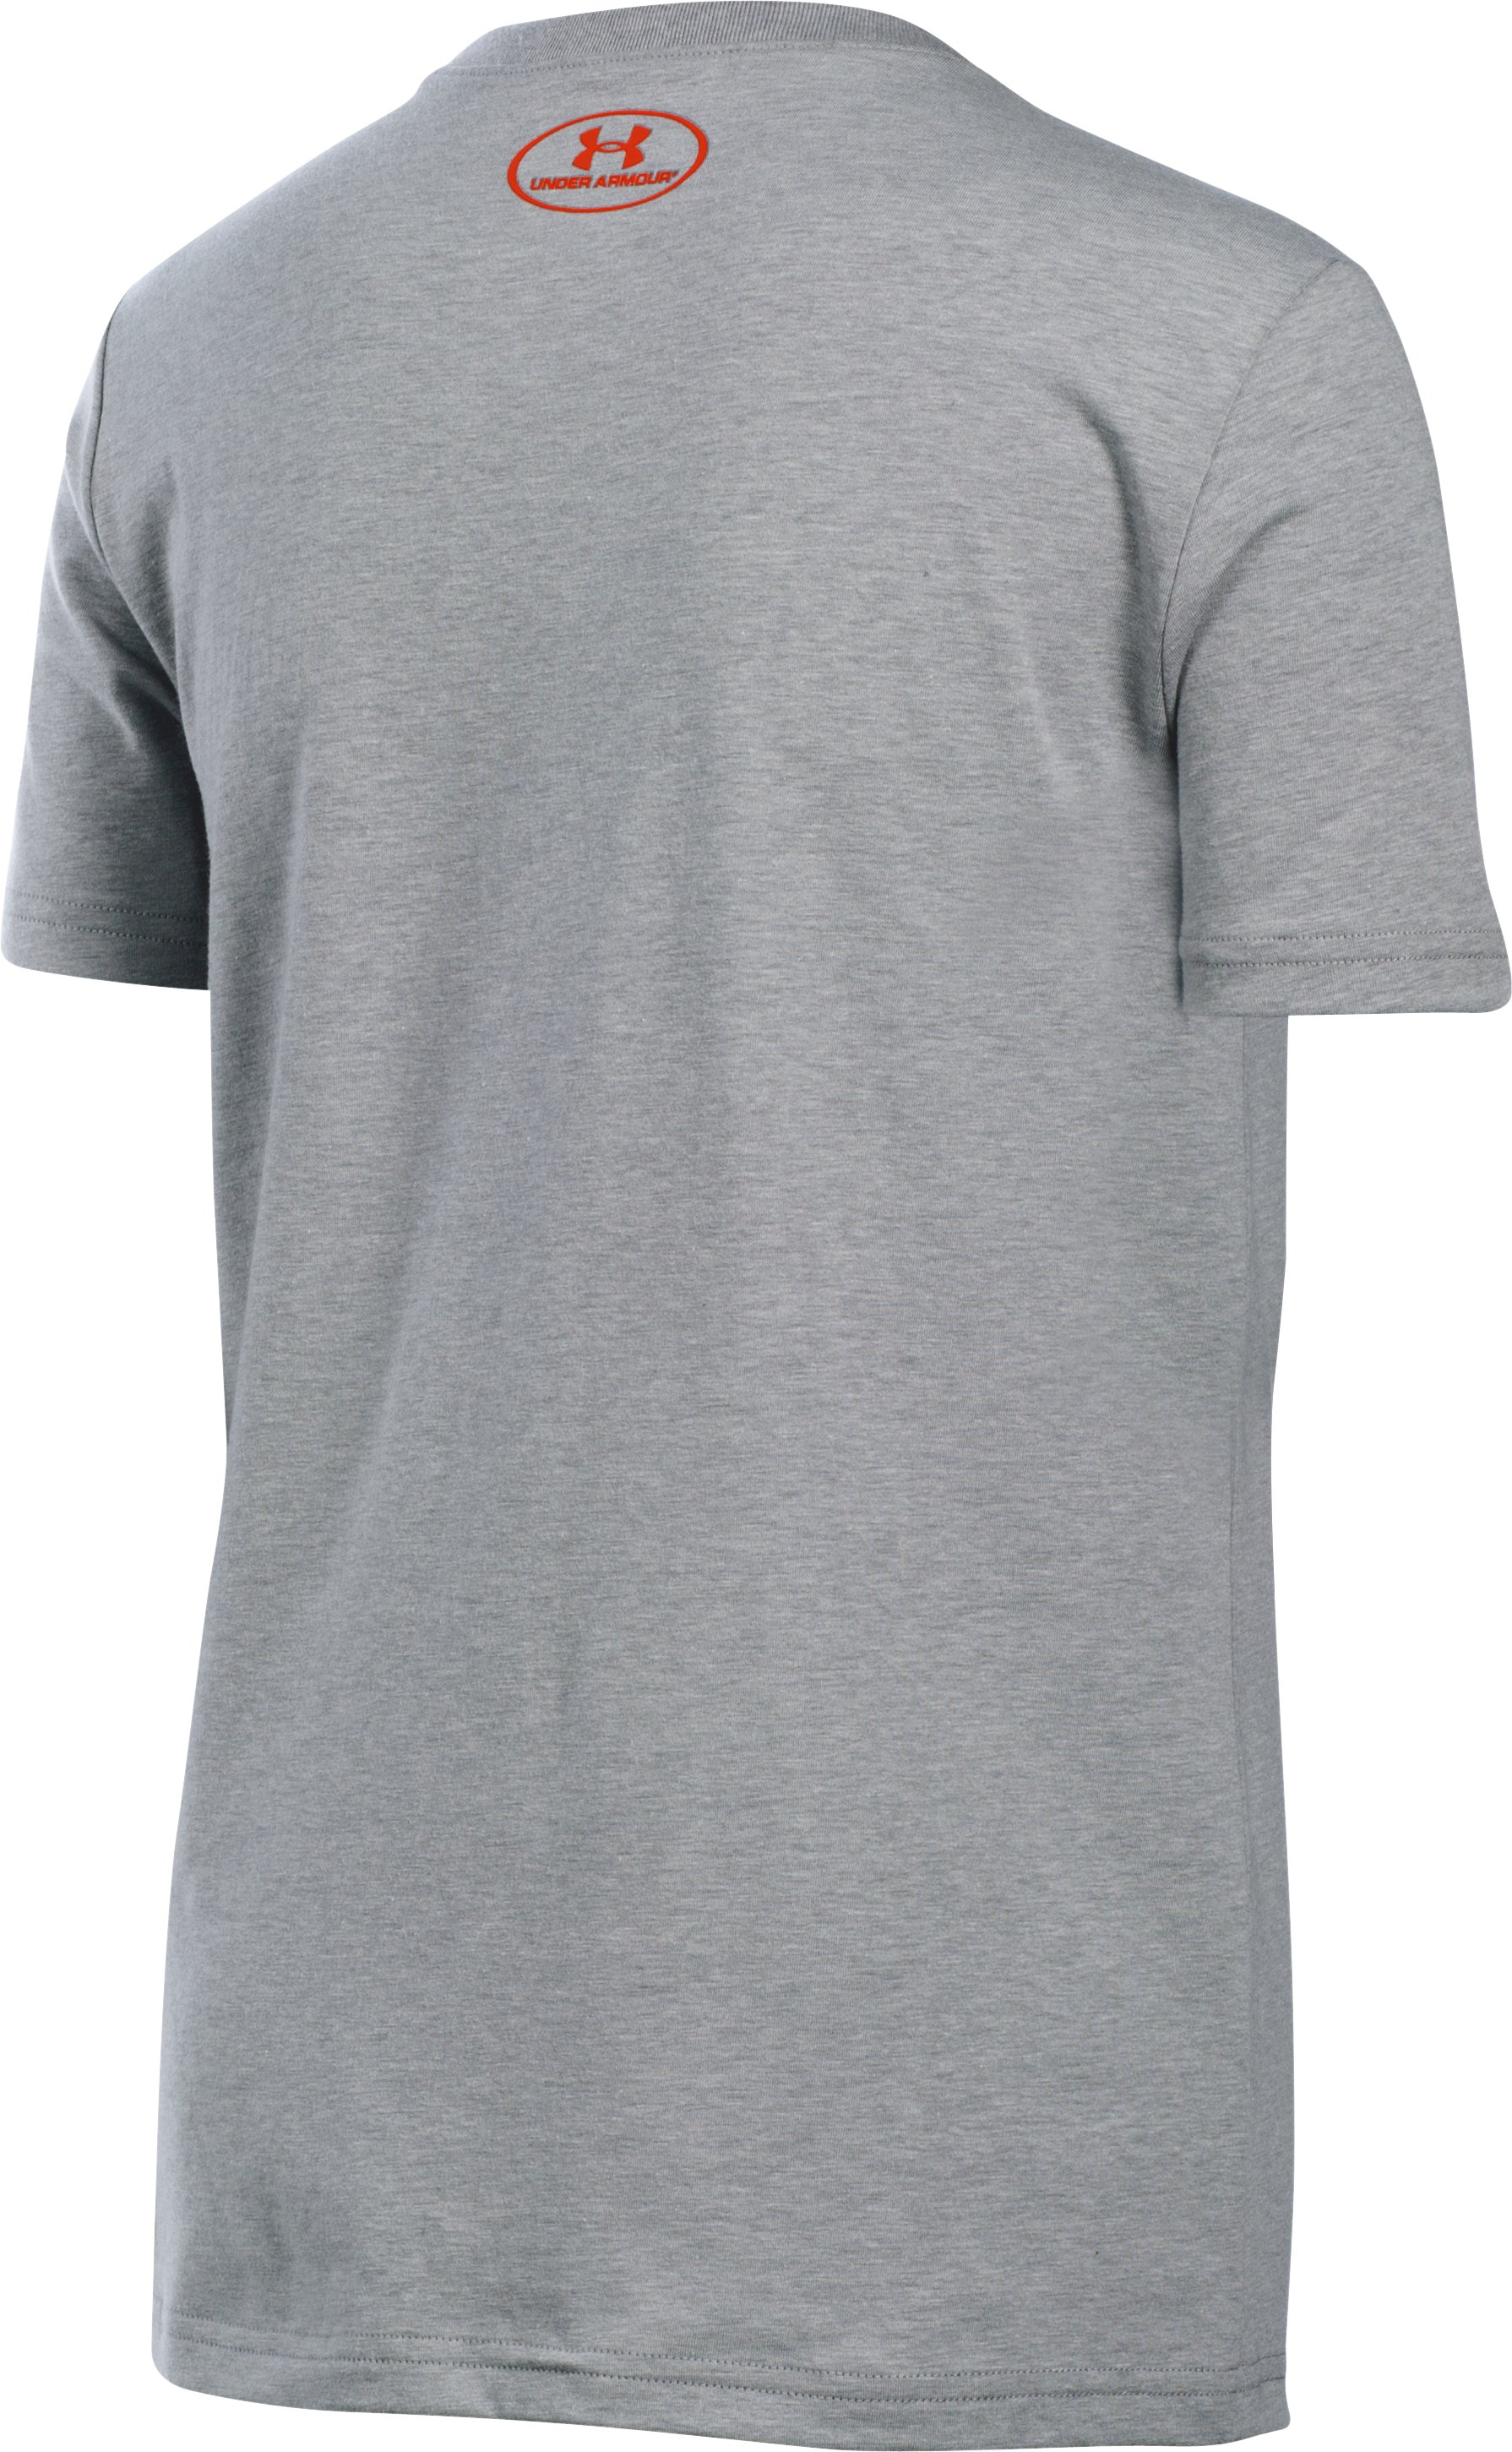 Boys' UA Hunt Tag Short Sleeve T-Shirt, True Gray Heather, undefined